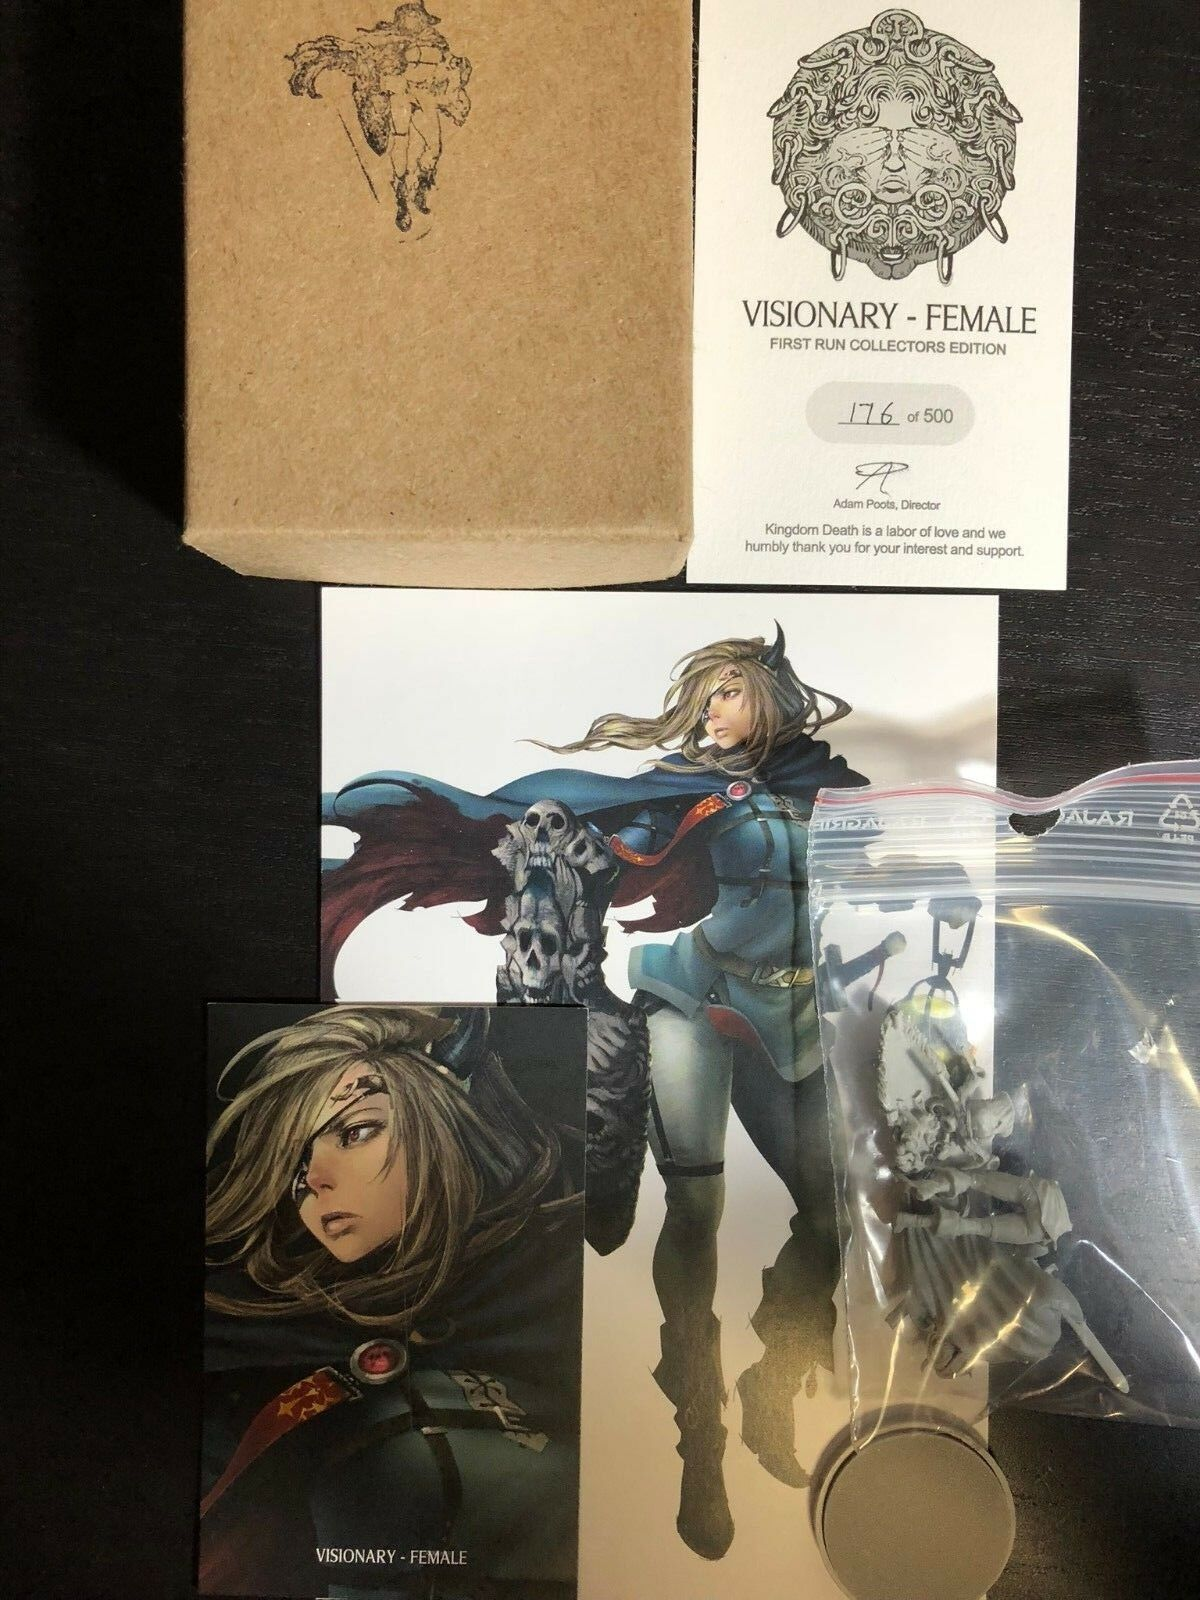 alto descuento Kingdom Kingdom Kingdom Death Visionary Female Limited Collector's Edition Resin  calidad garantizada